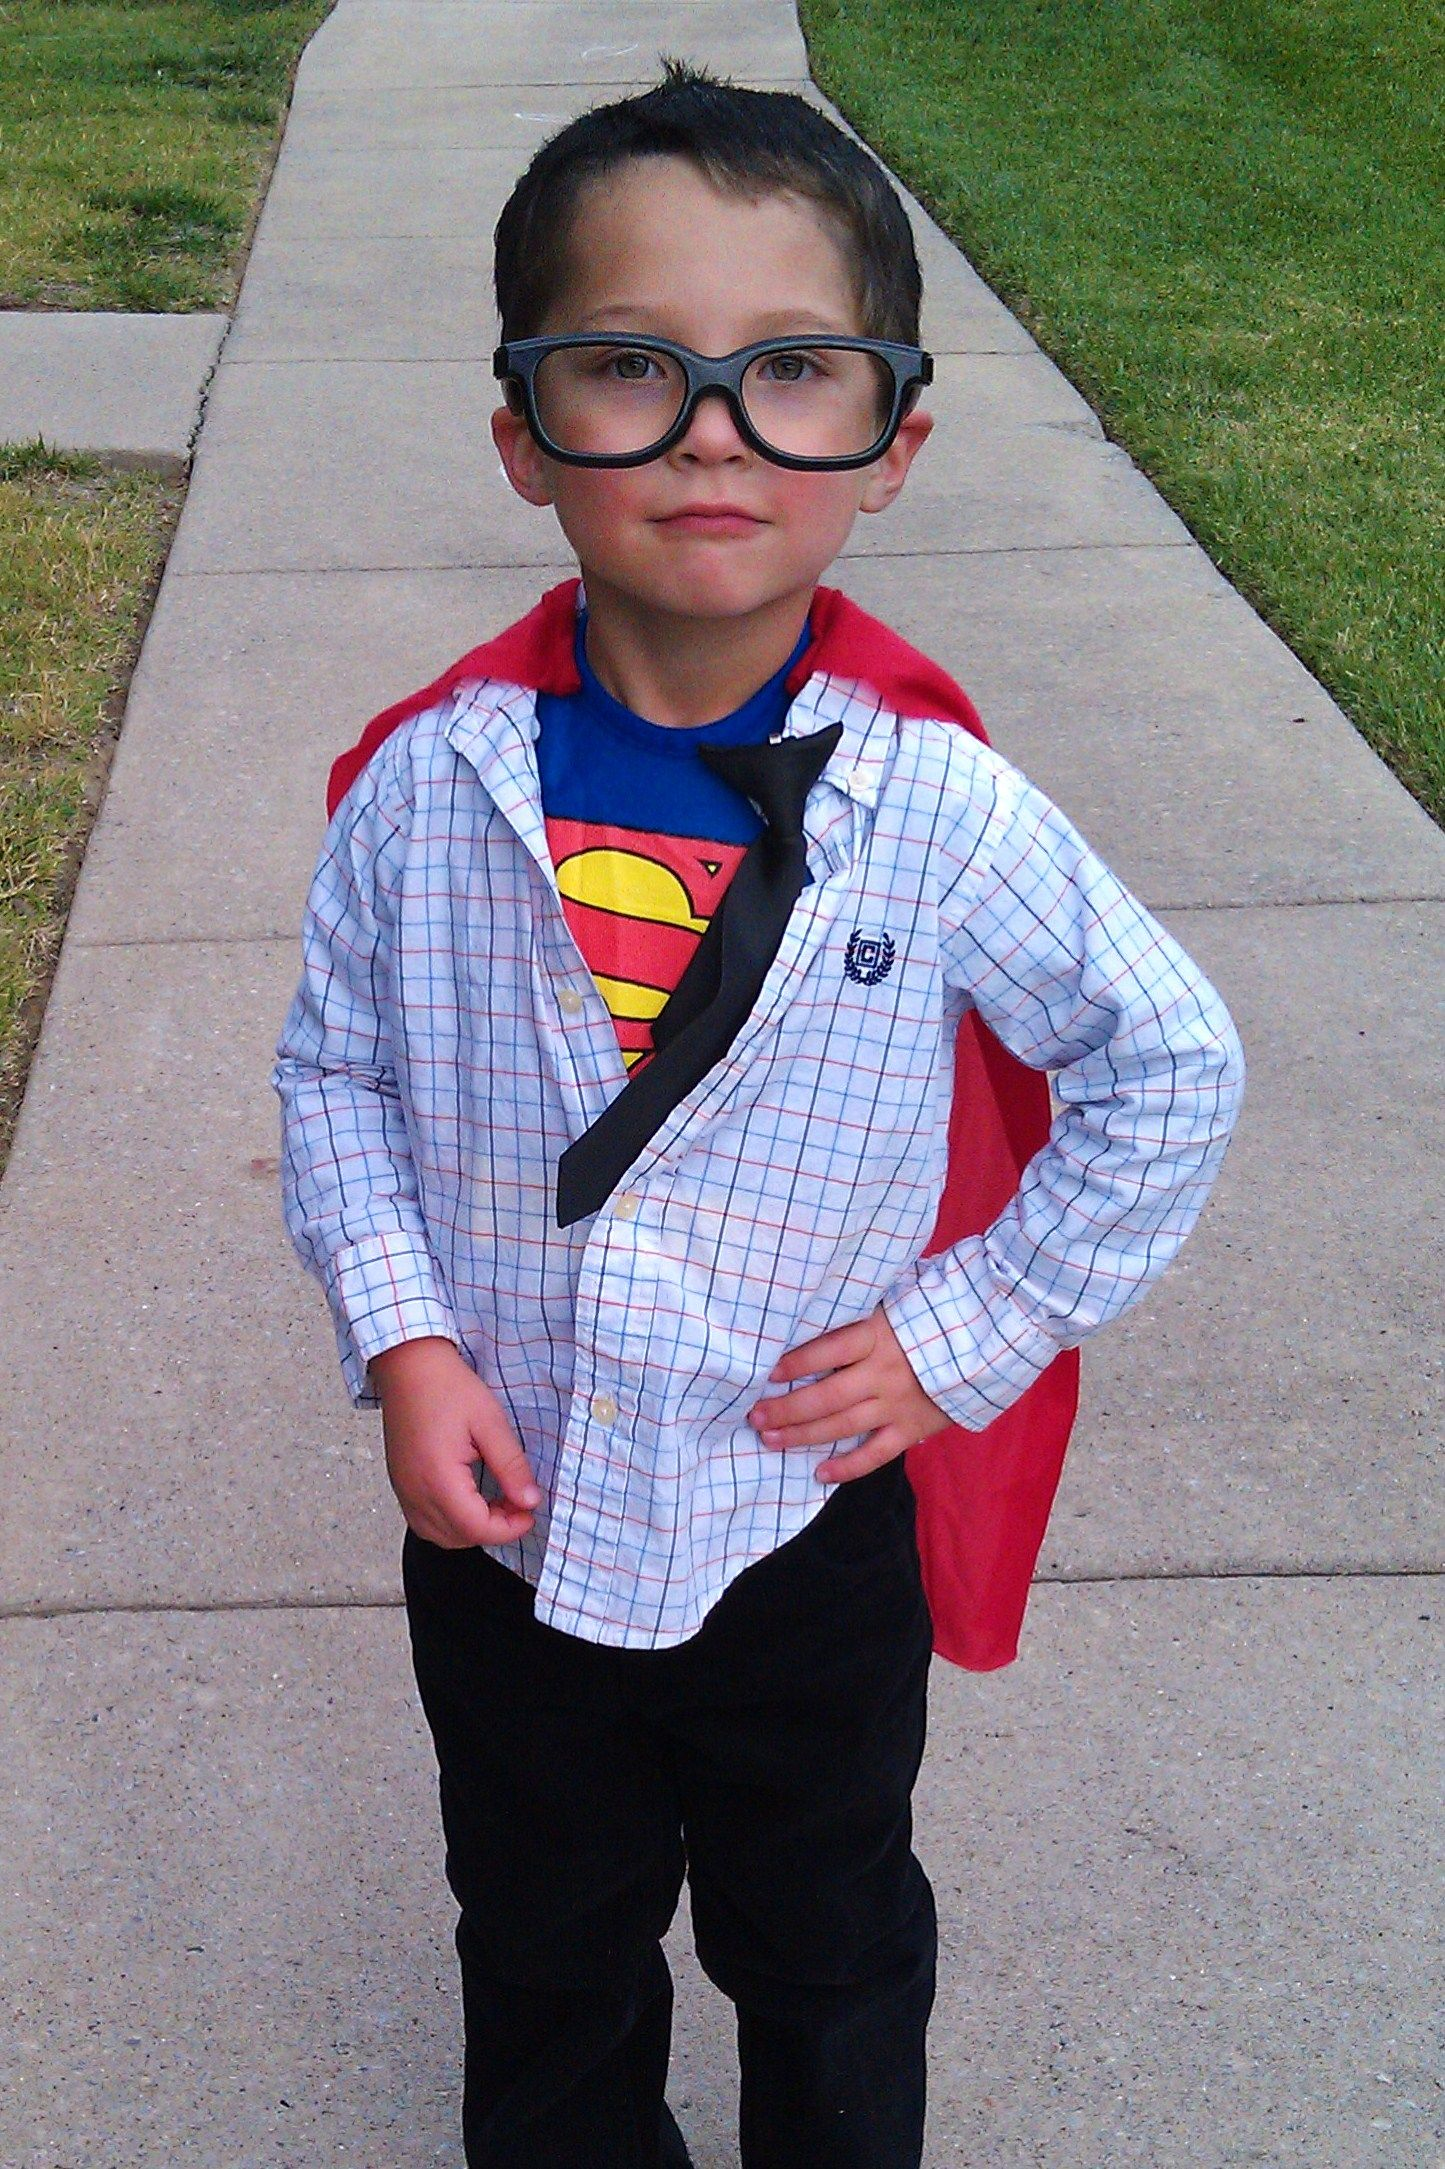 Clark Kent (With images) Superman costumes, Last minute